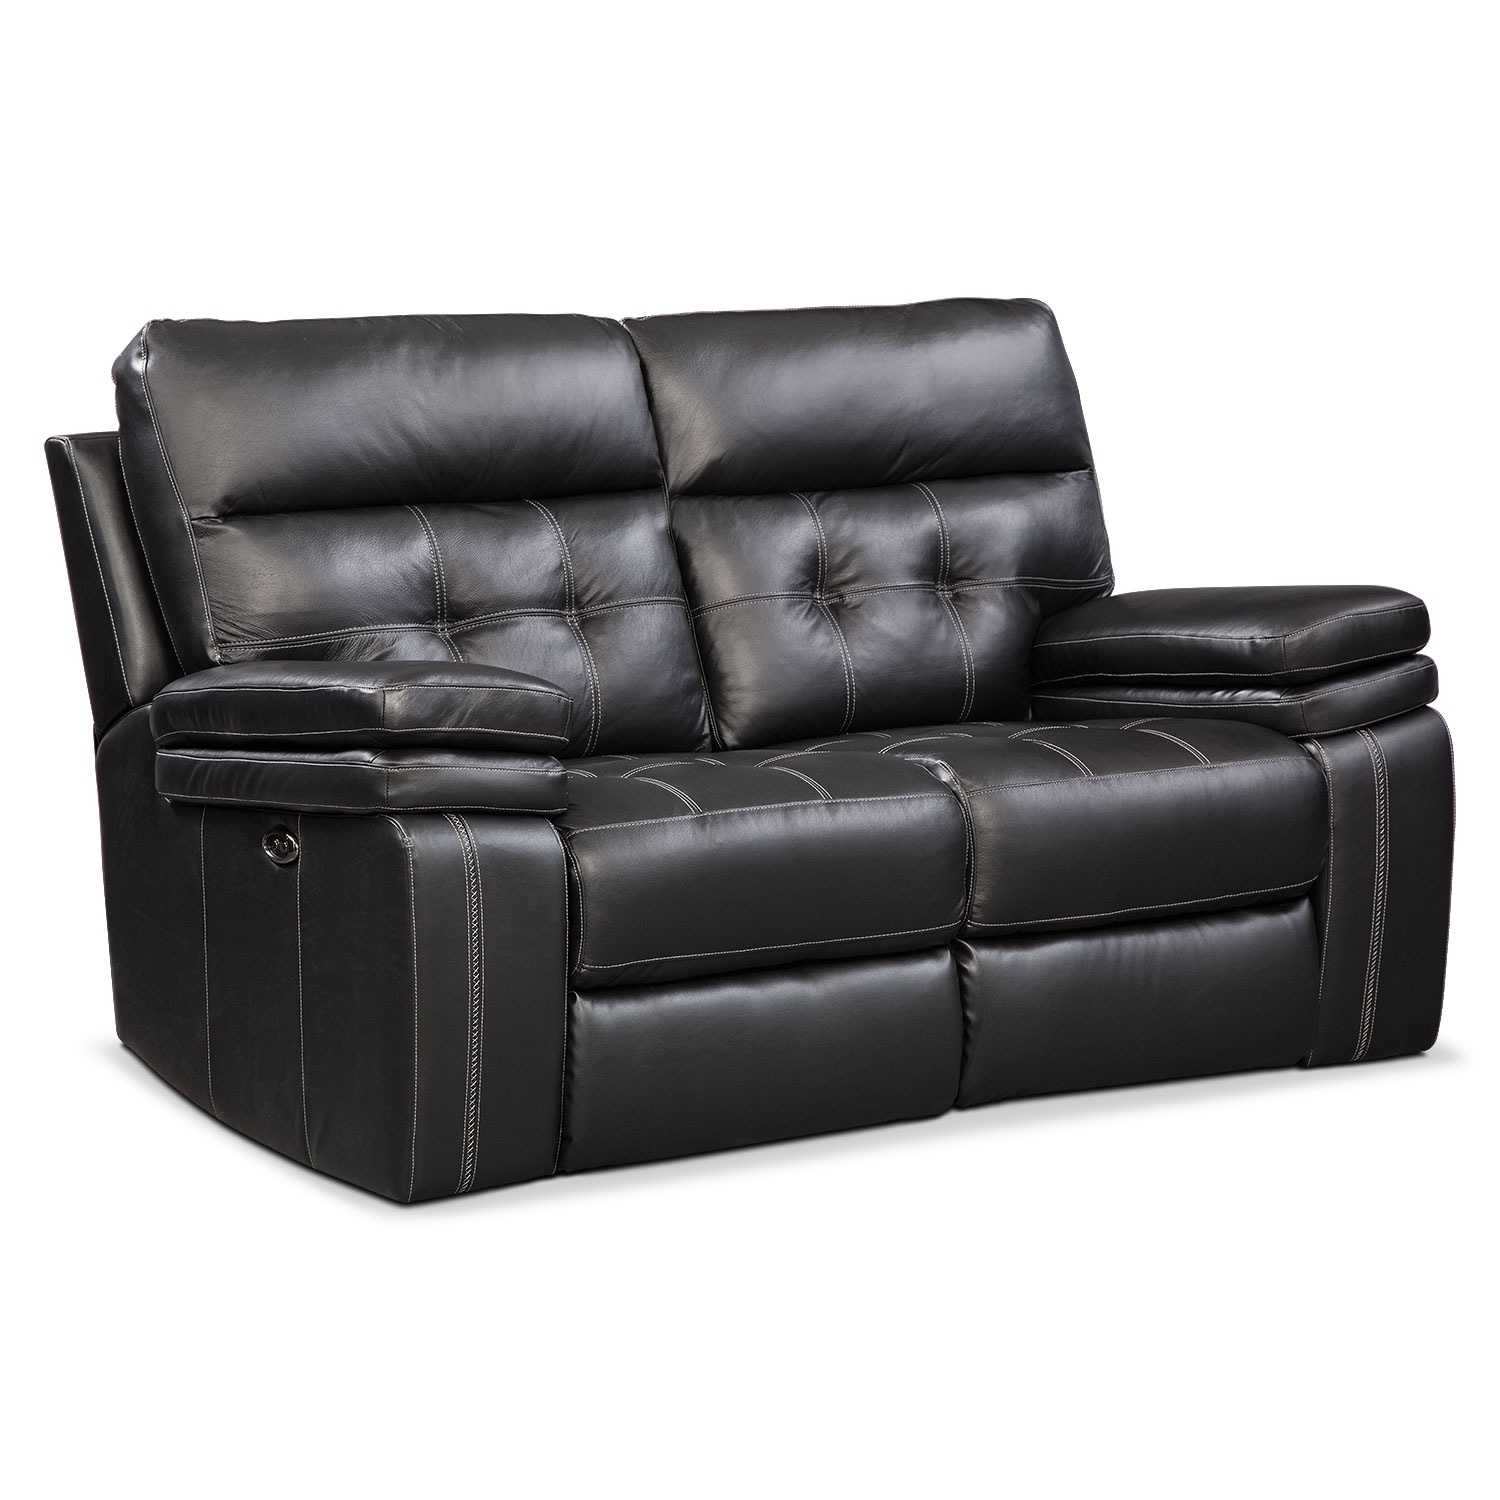 Brisco Power Reclining Loveseat - Black